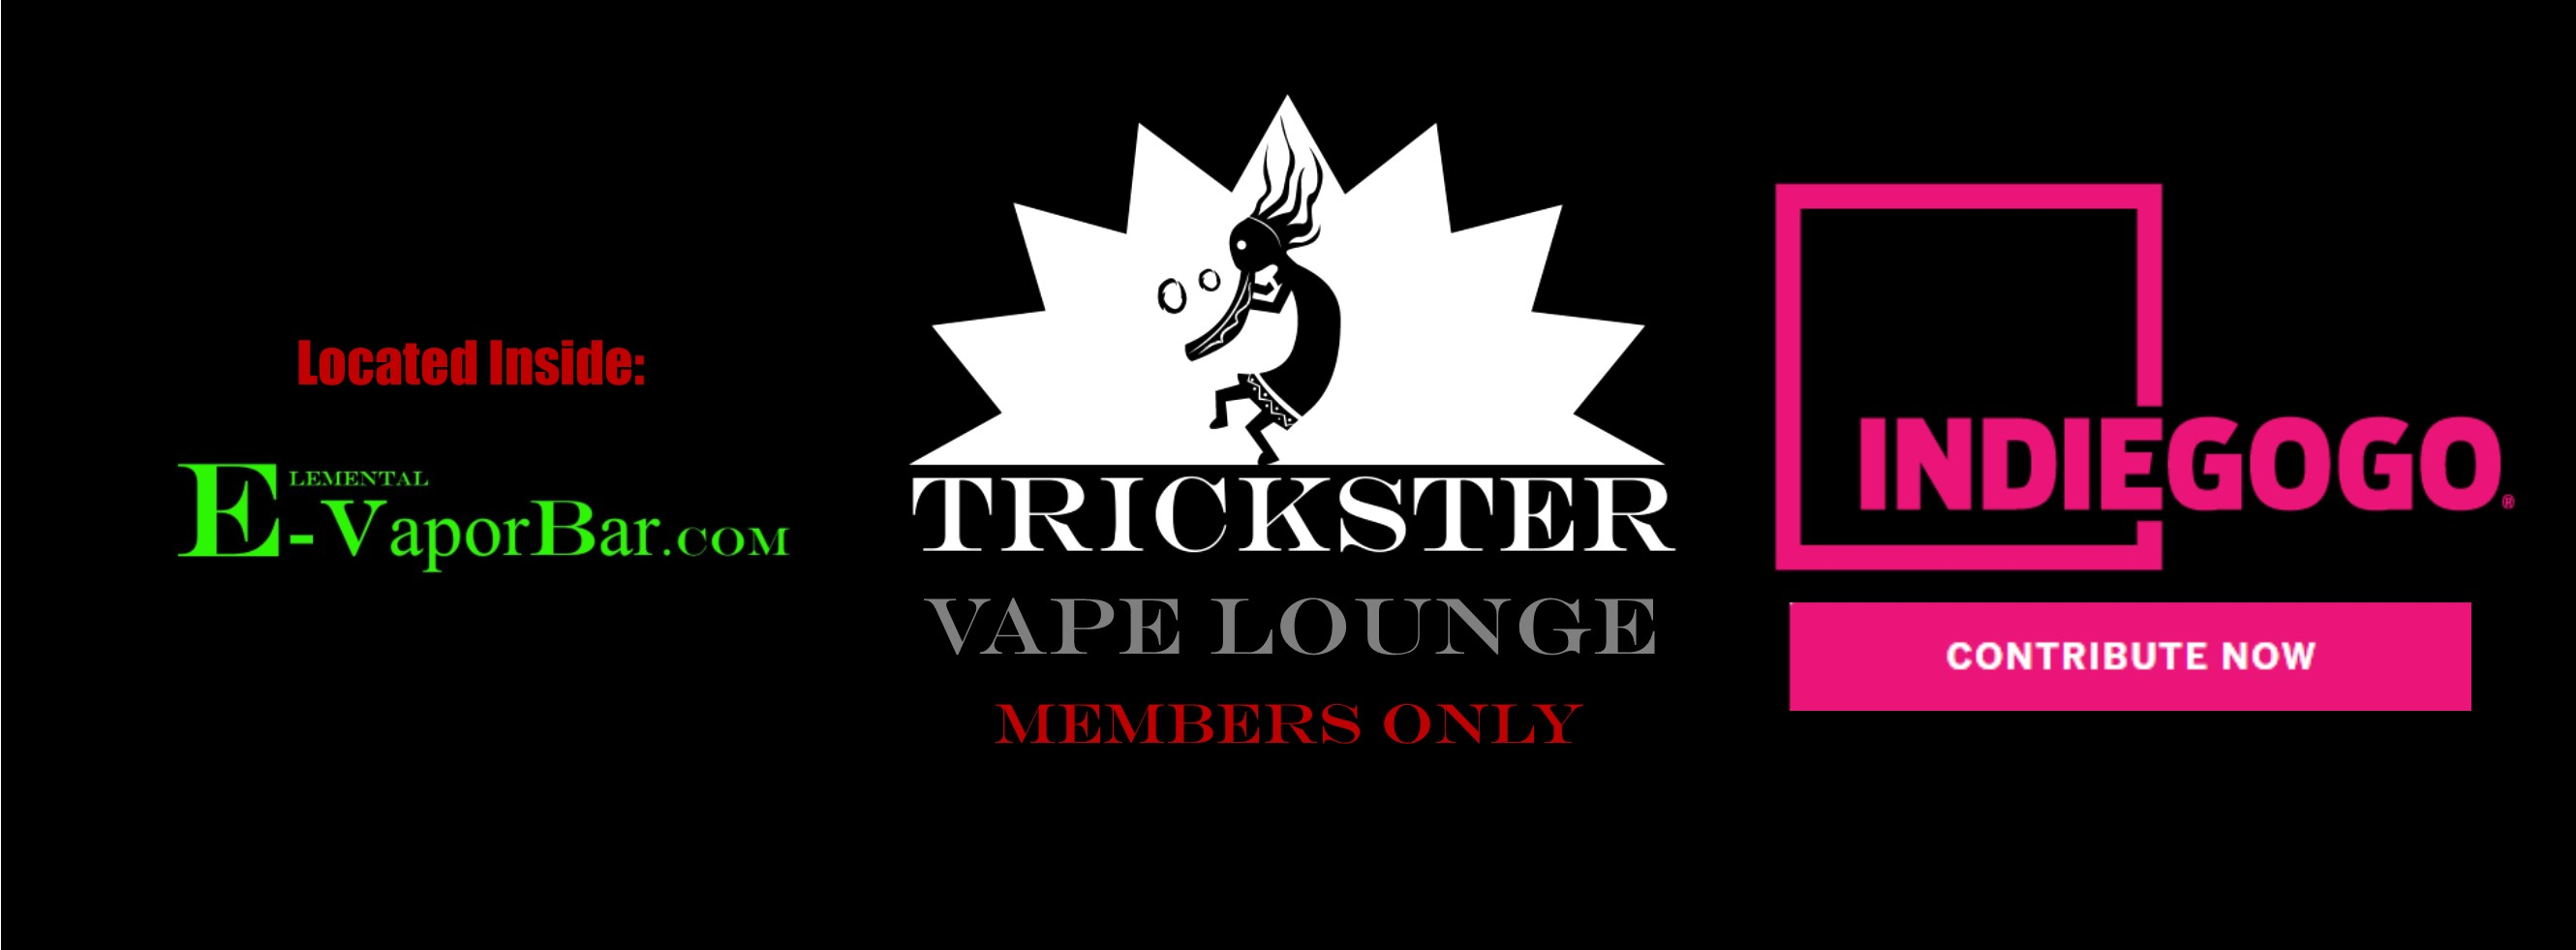 Private Vape Lounge in Elemental Vapor Bar